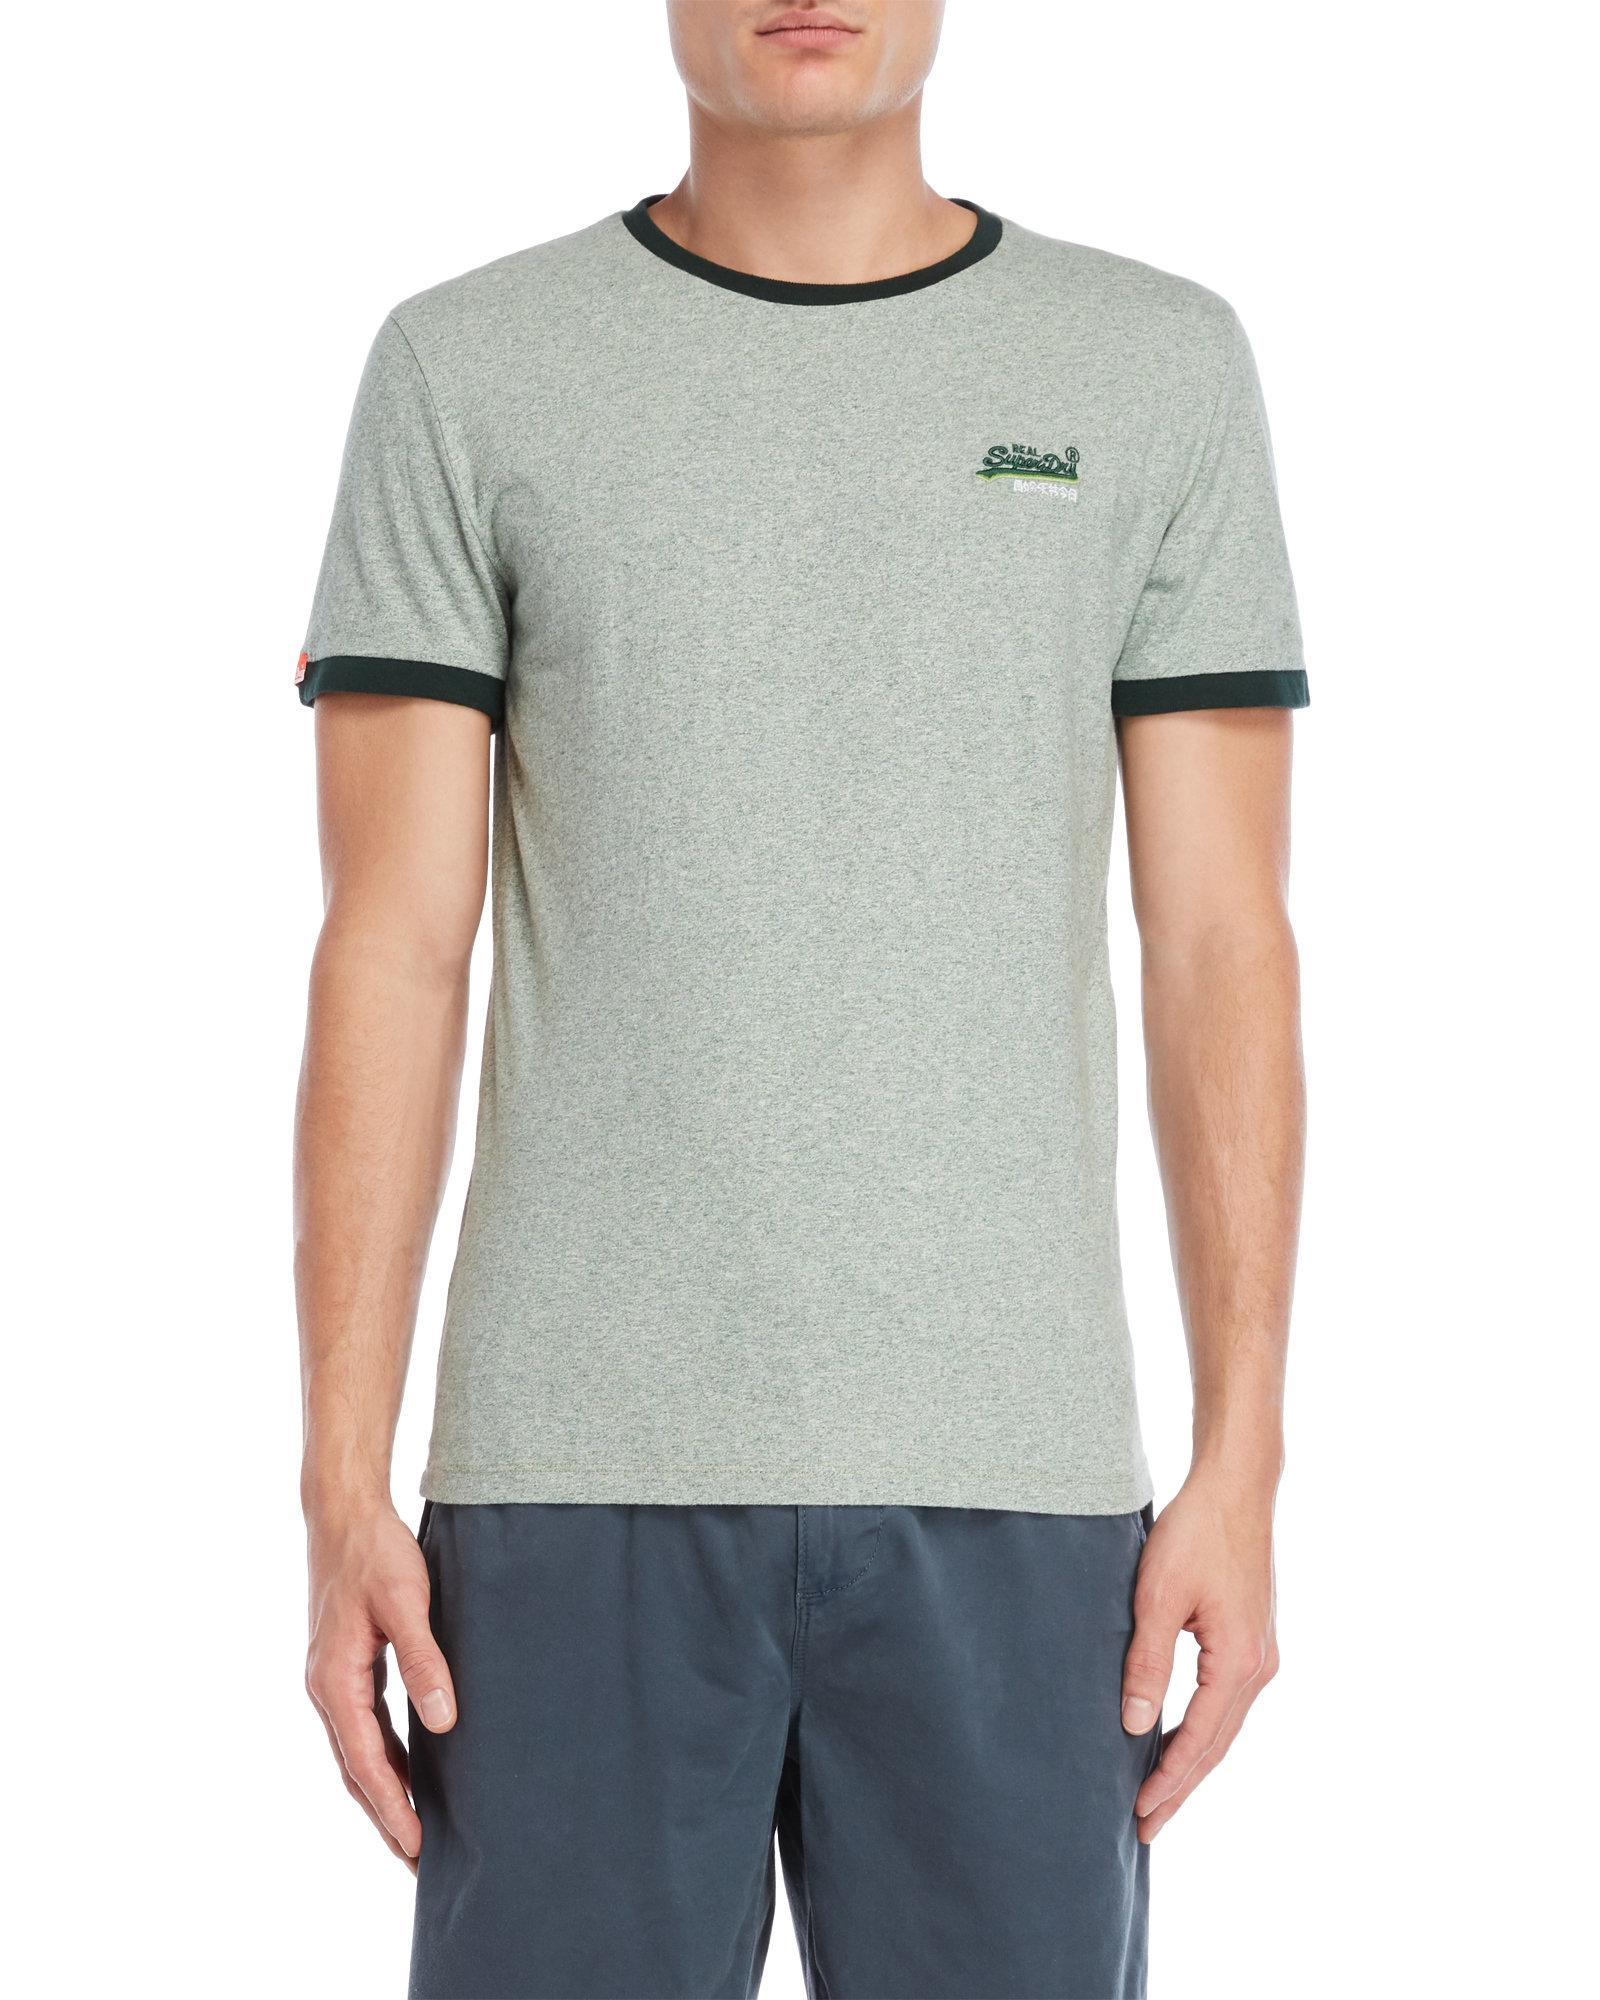 718255ce08efd2 Lyst - Superdry Embroidered Logo Ringer Tee in Green for Men